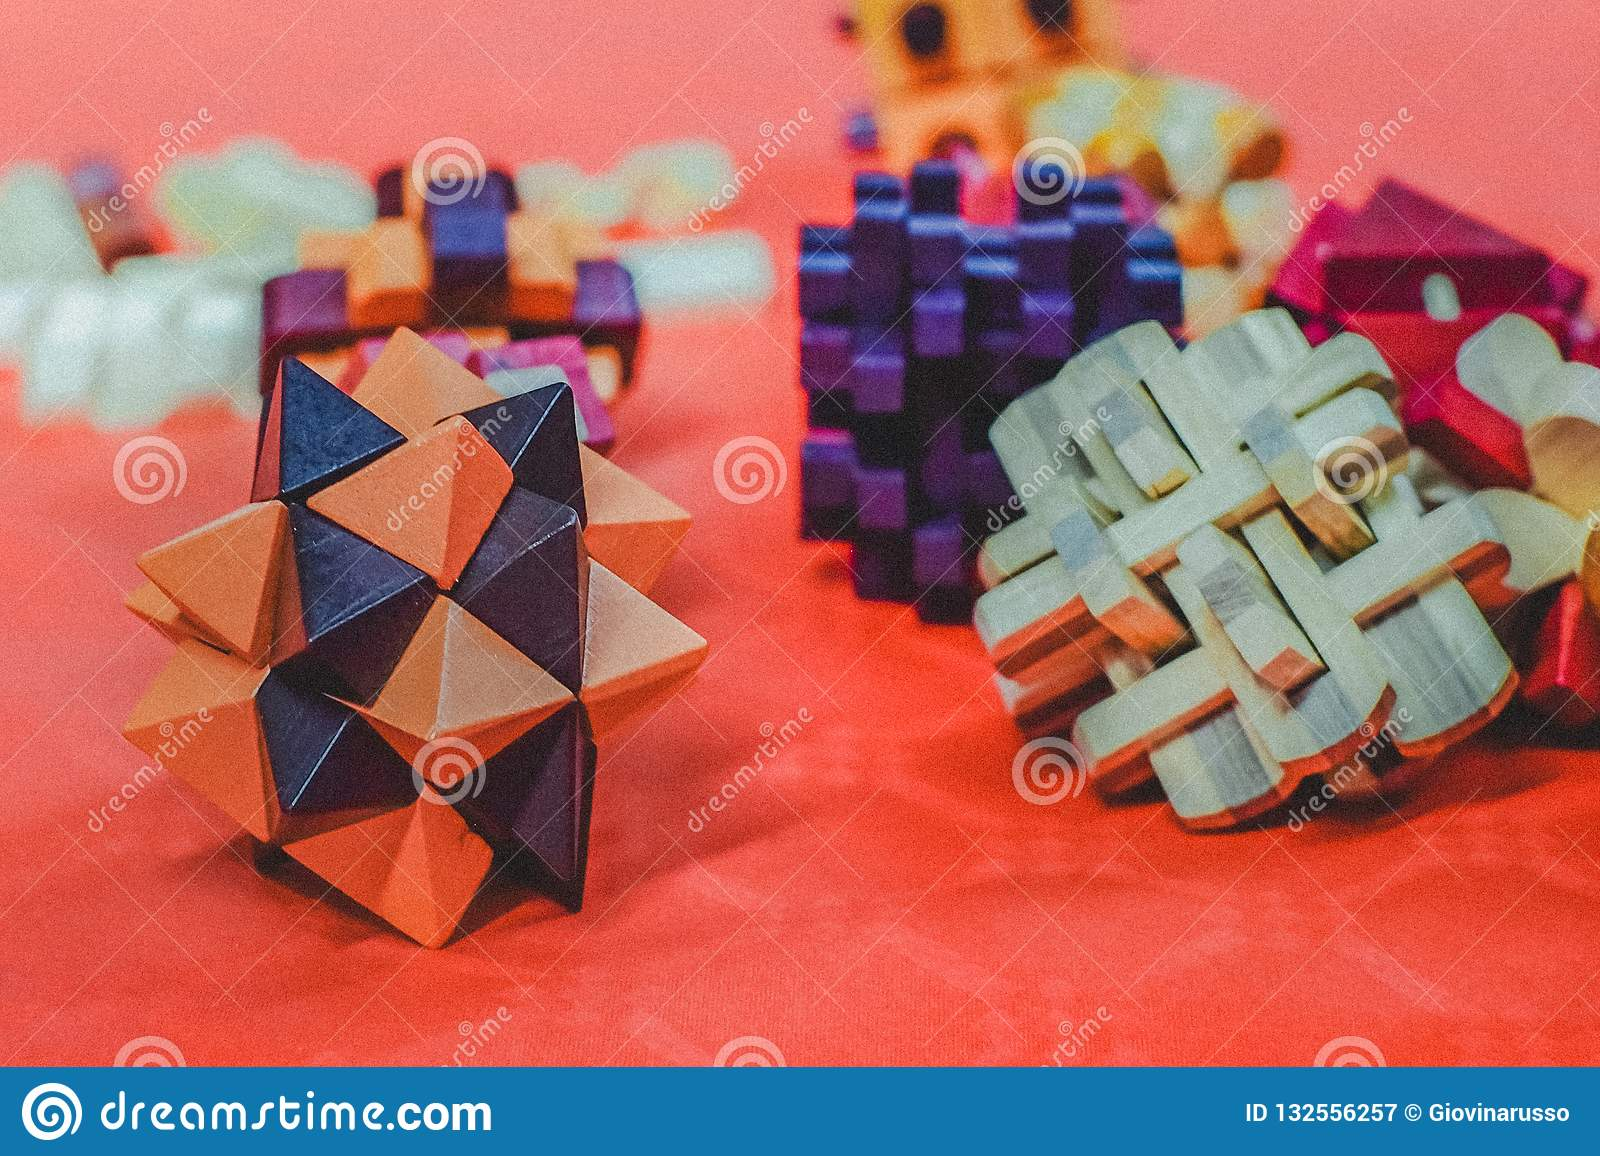 Colorful Block Arrangement of different shapes and colors